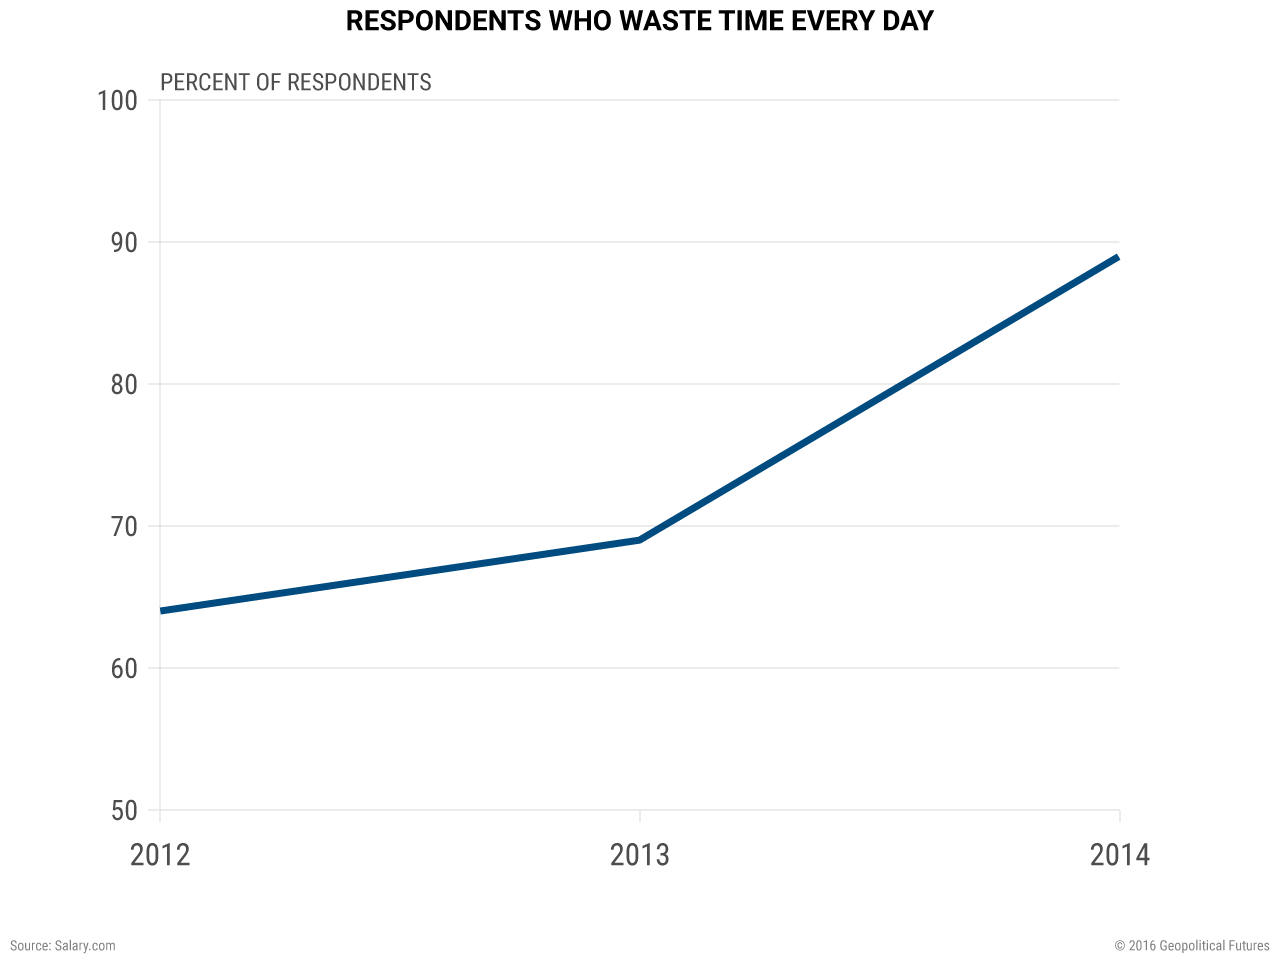 respondents-who-waste-time-every-day